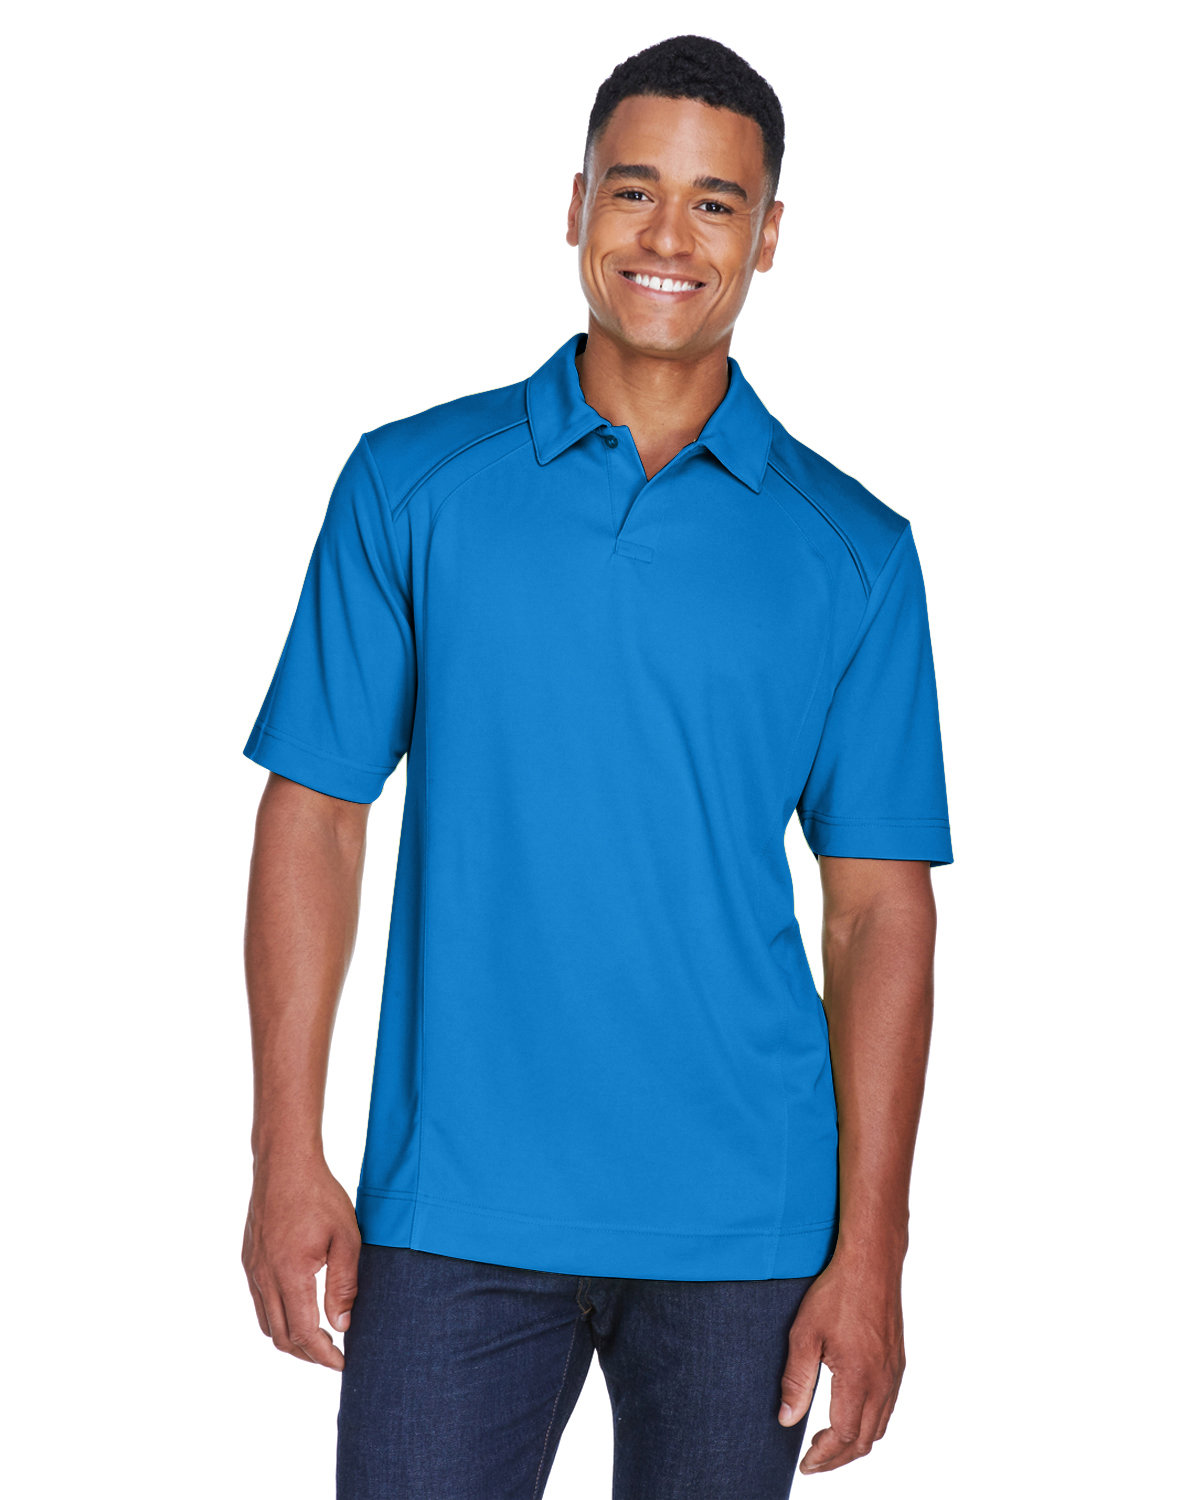 North End Men's Recycled Polyester Performance Piqué Polo LT NAUTICAL BLU